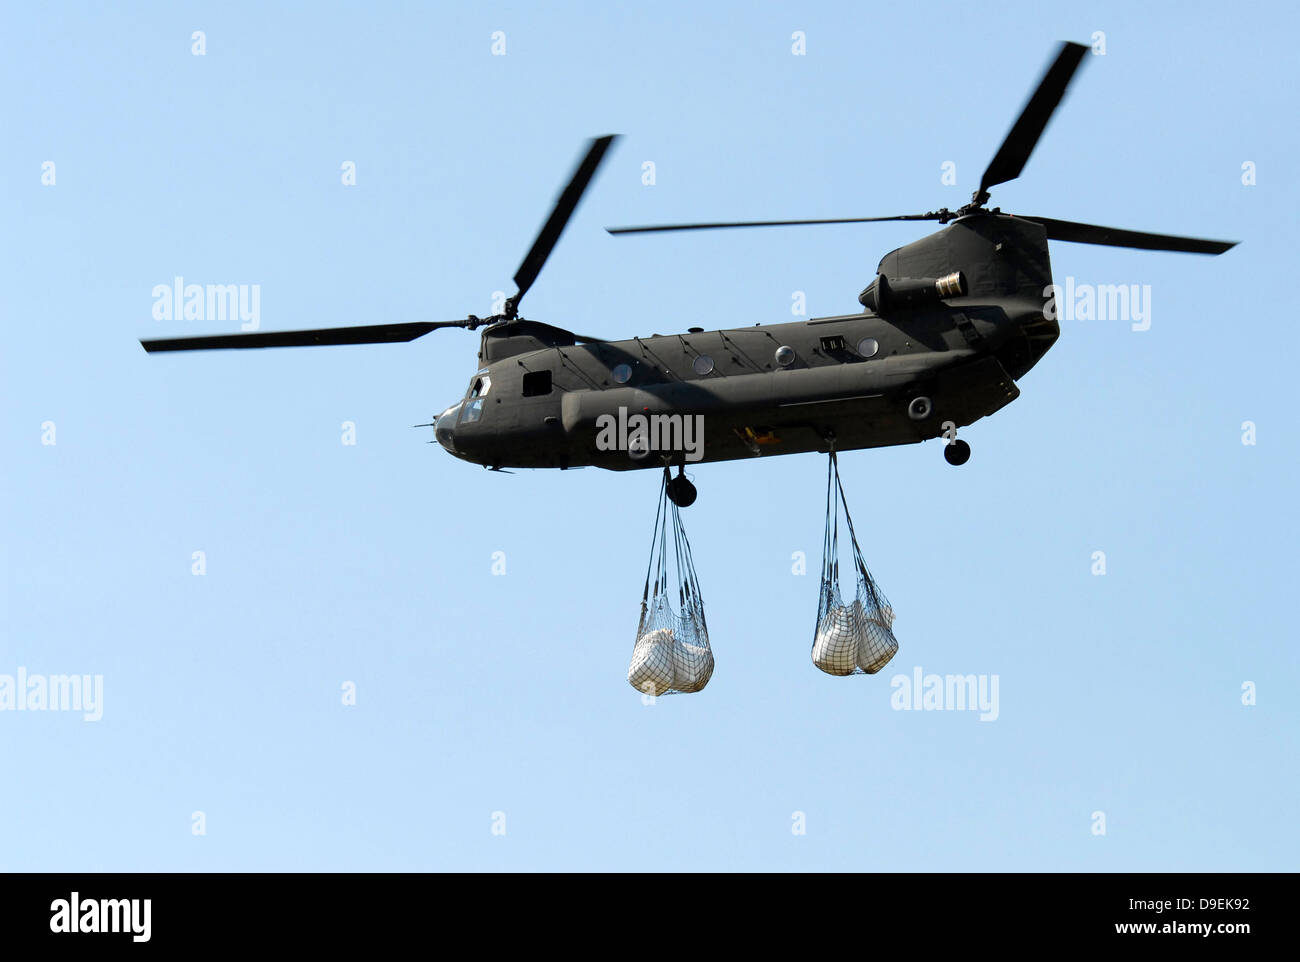 A CH-47 Chinook carrying sandbags. - Stock Image